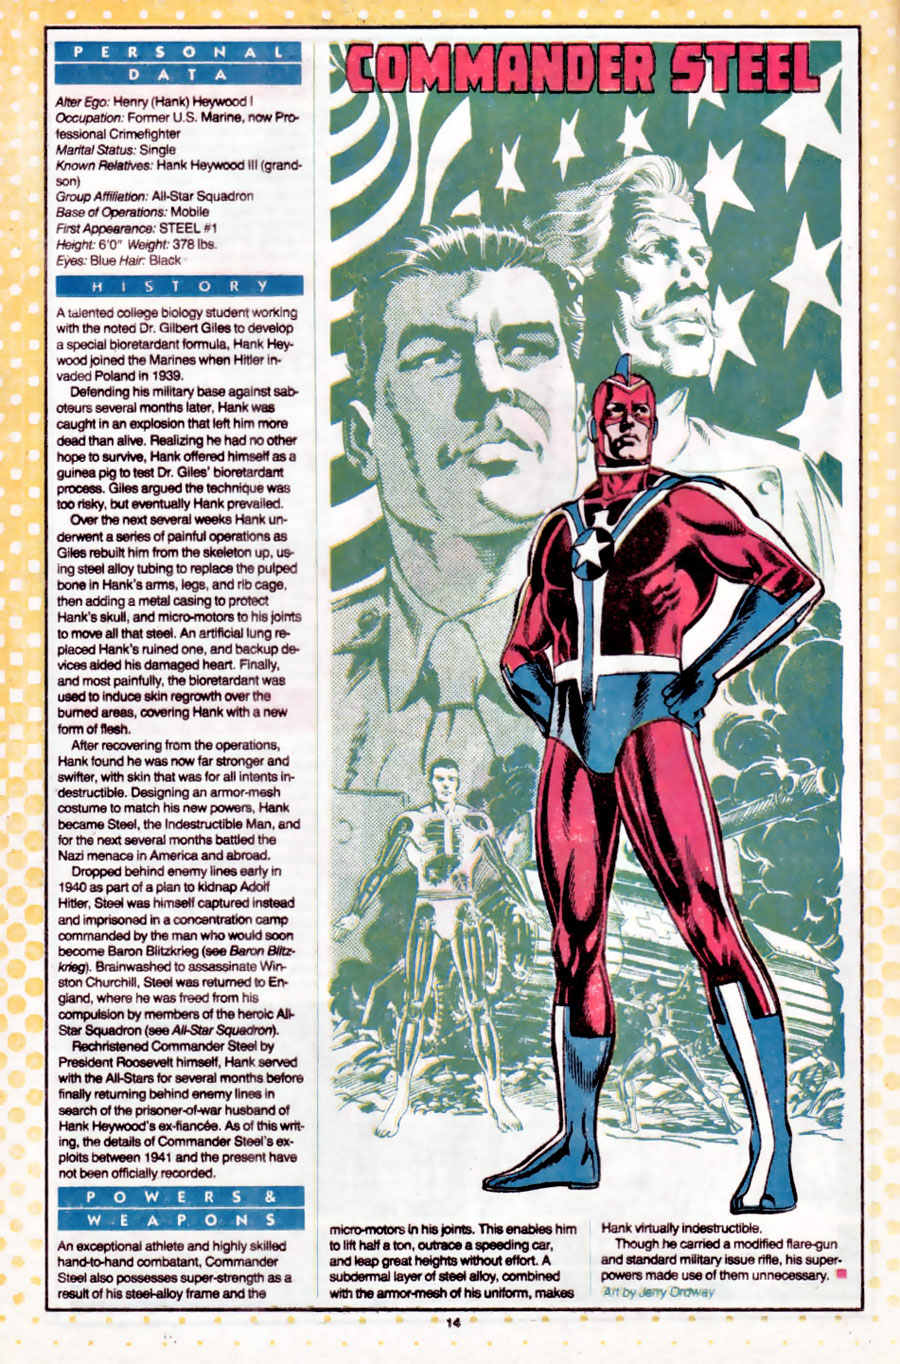 Commander Steel by Jerry Ordway from Who's Who